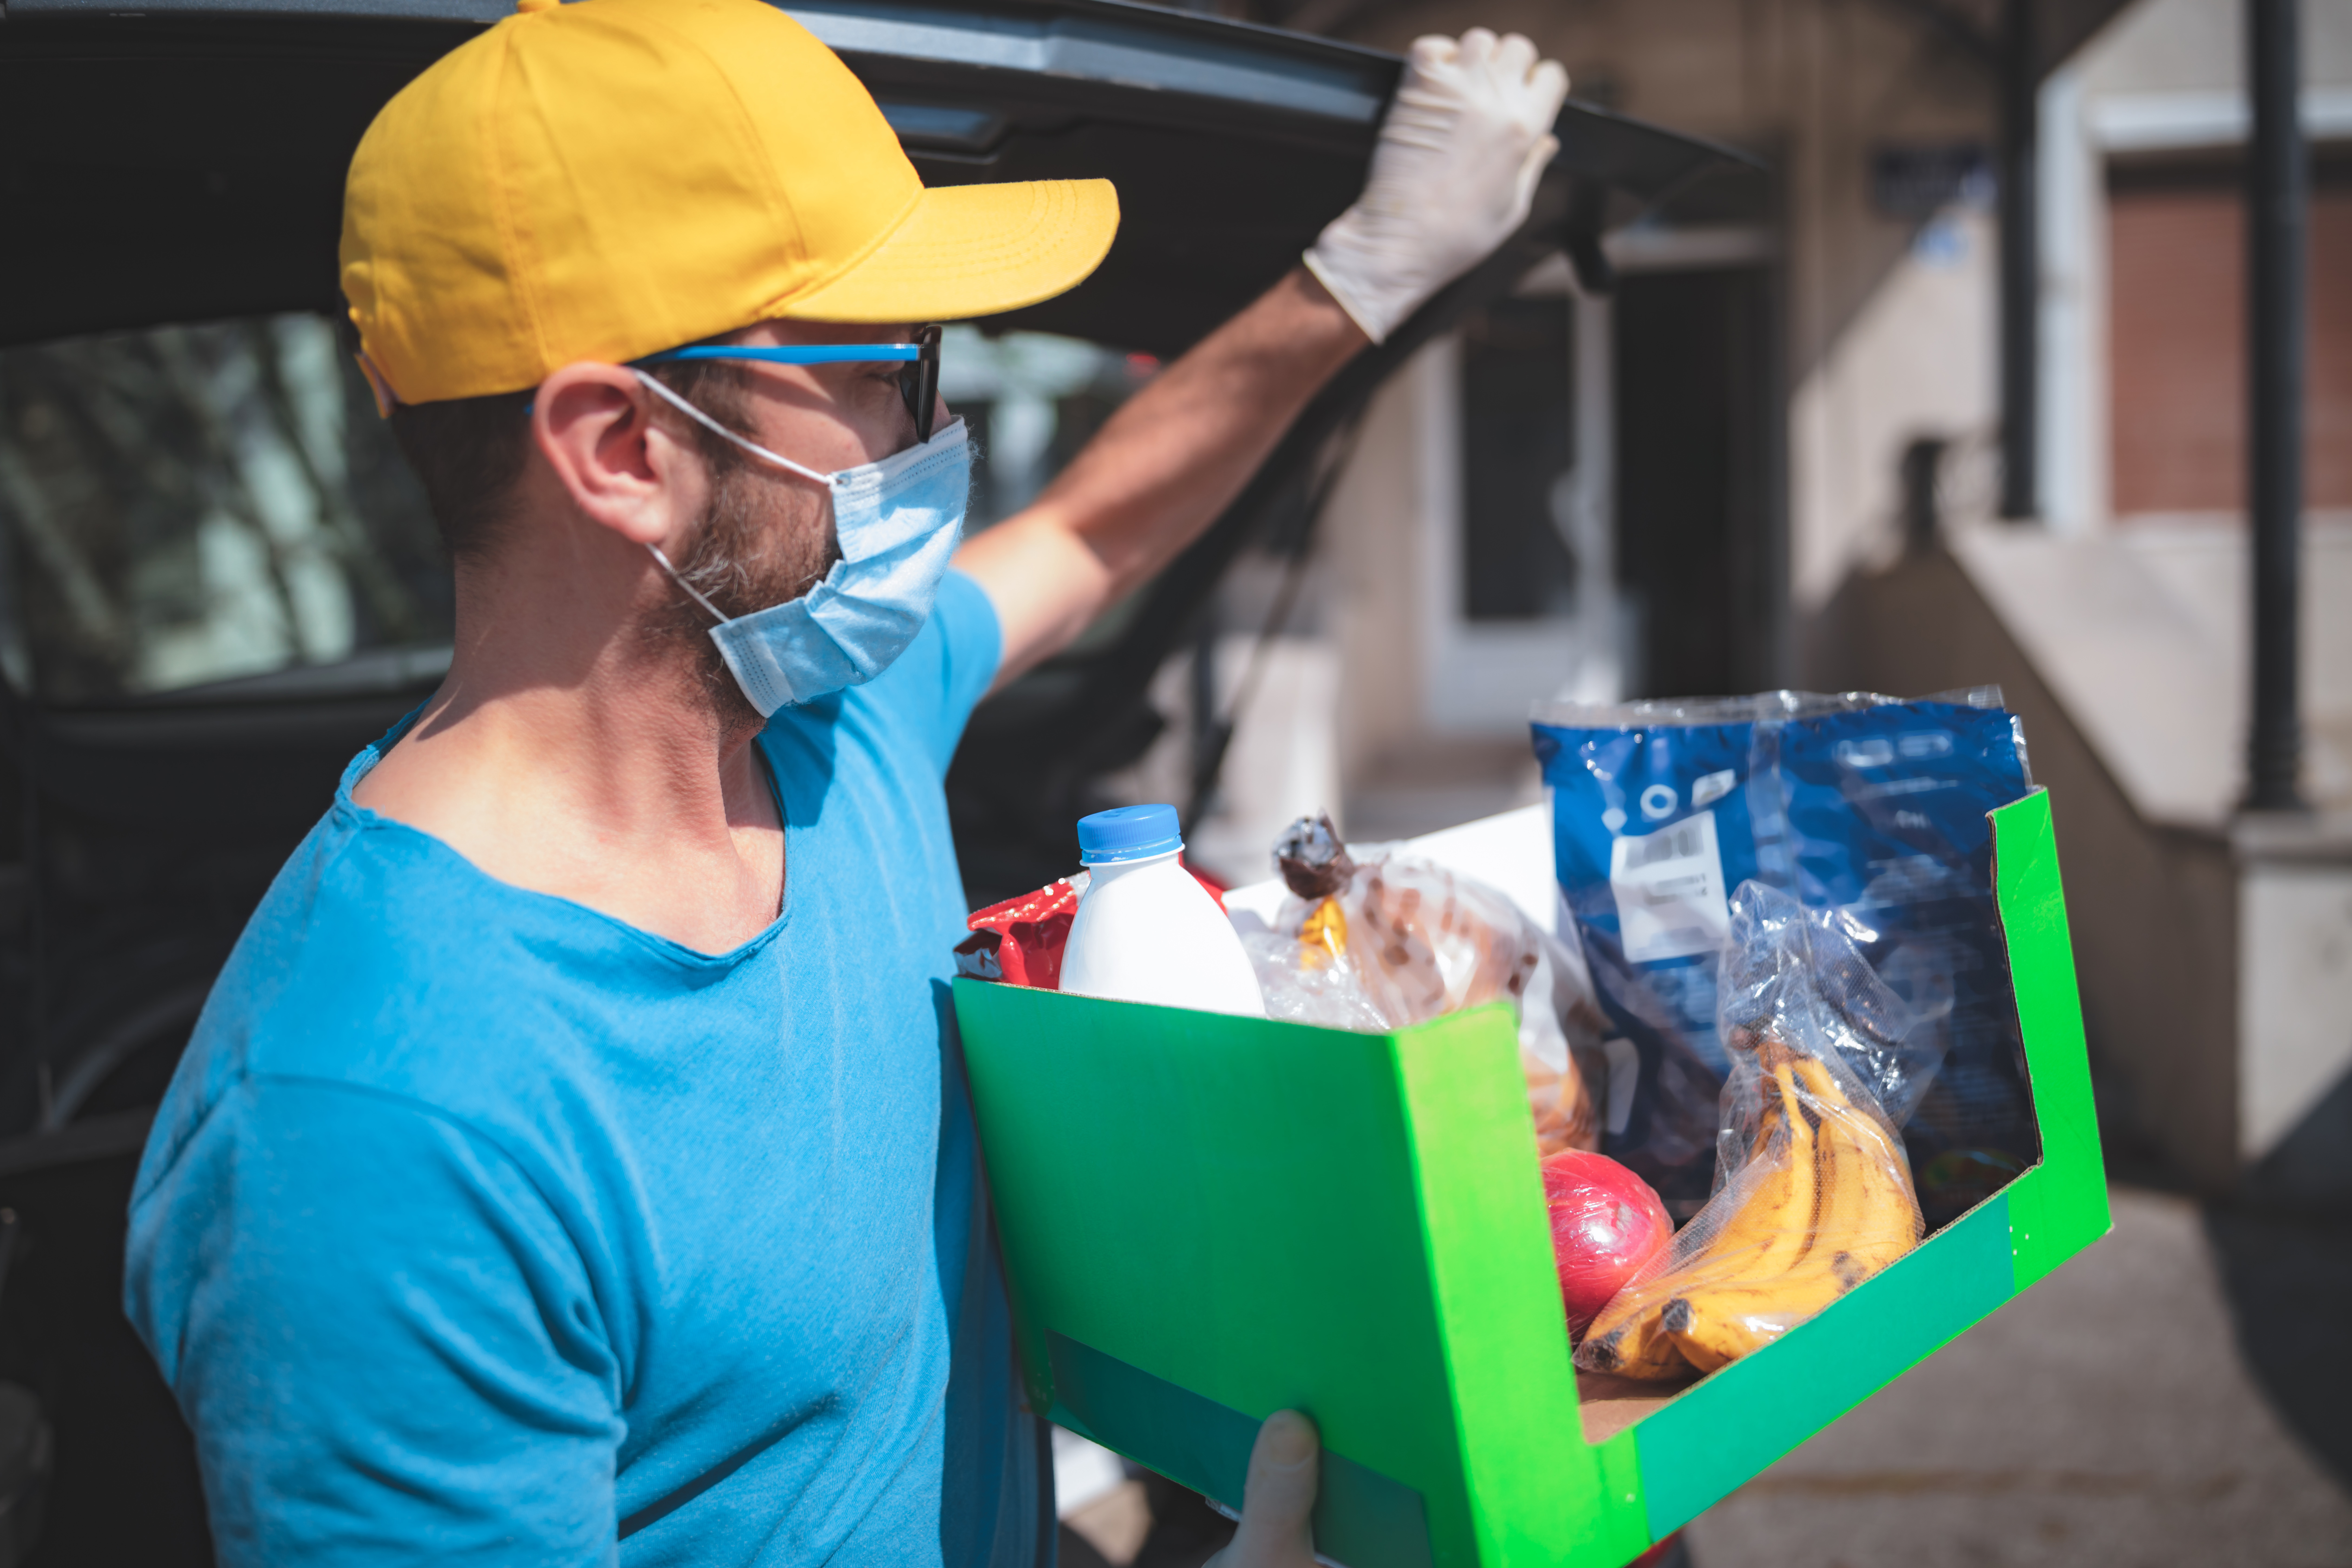 UWCM food distribution photo showing man with mask delivery package of groceries